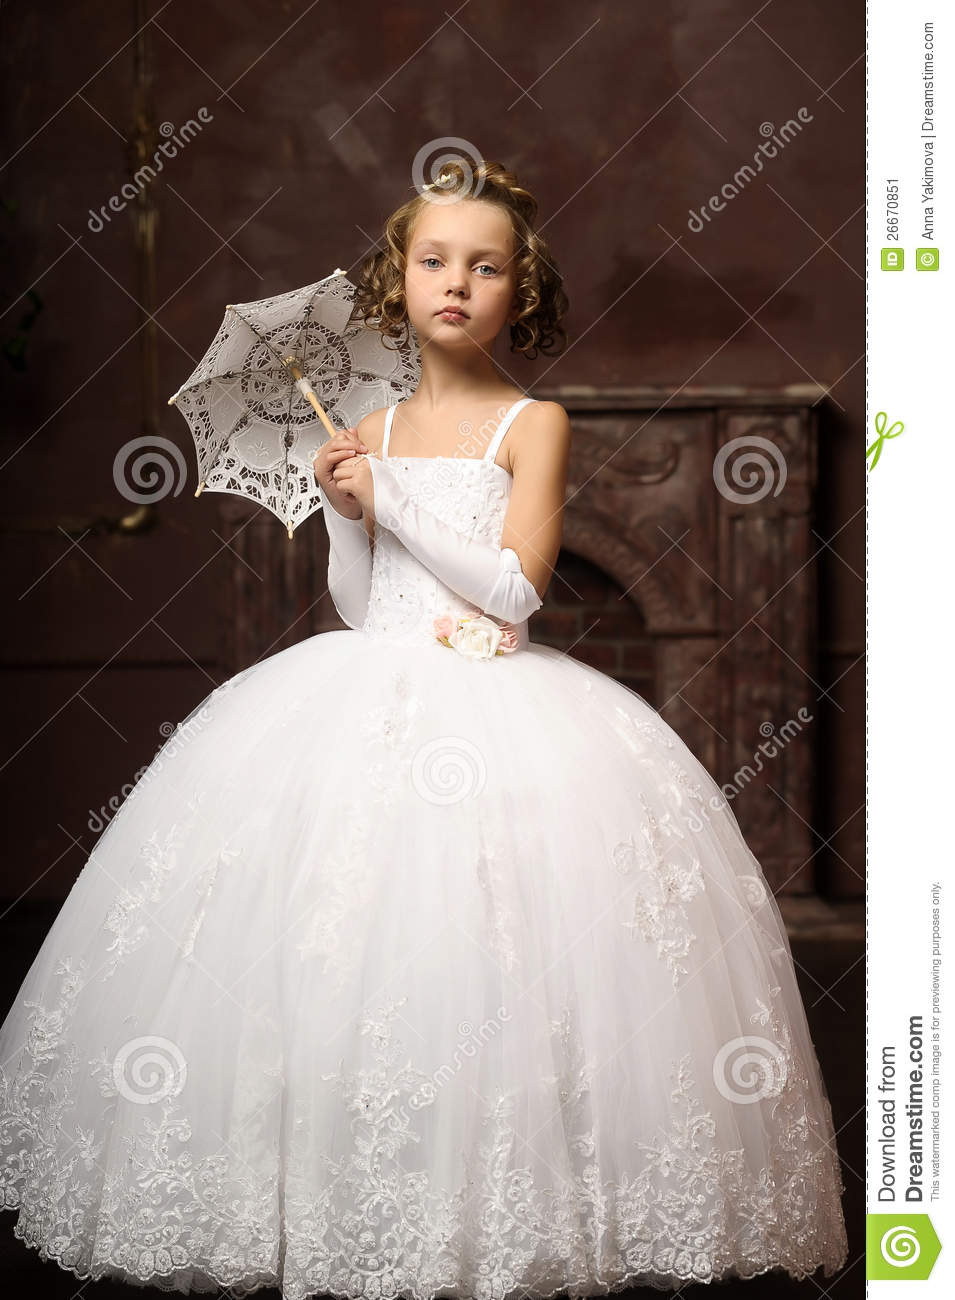 Little Girl In Wedding Dress Stock Image - Image: 26670851